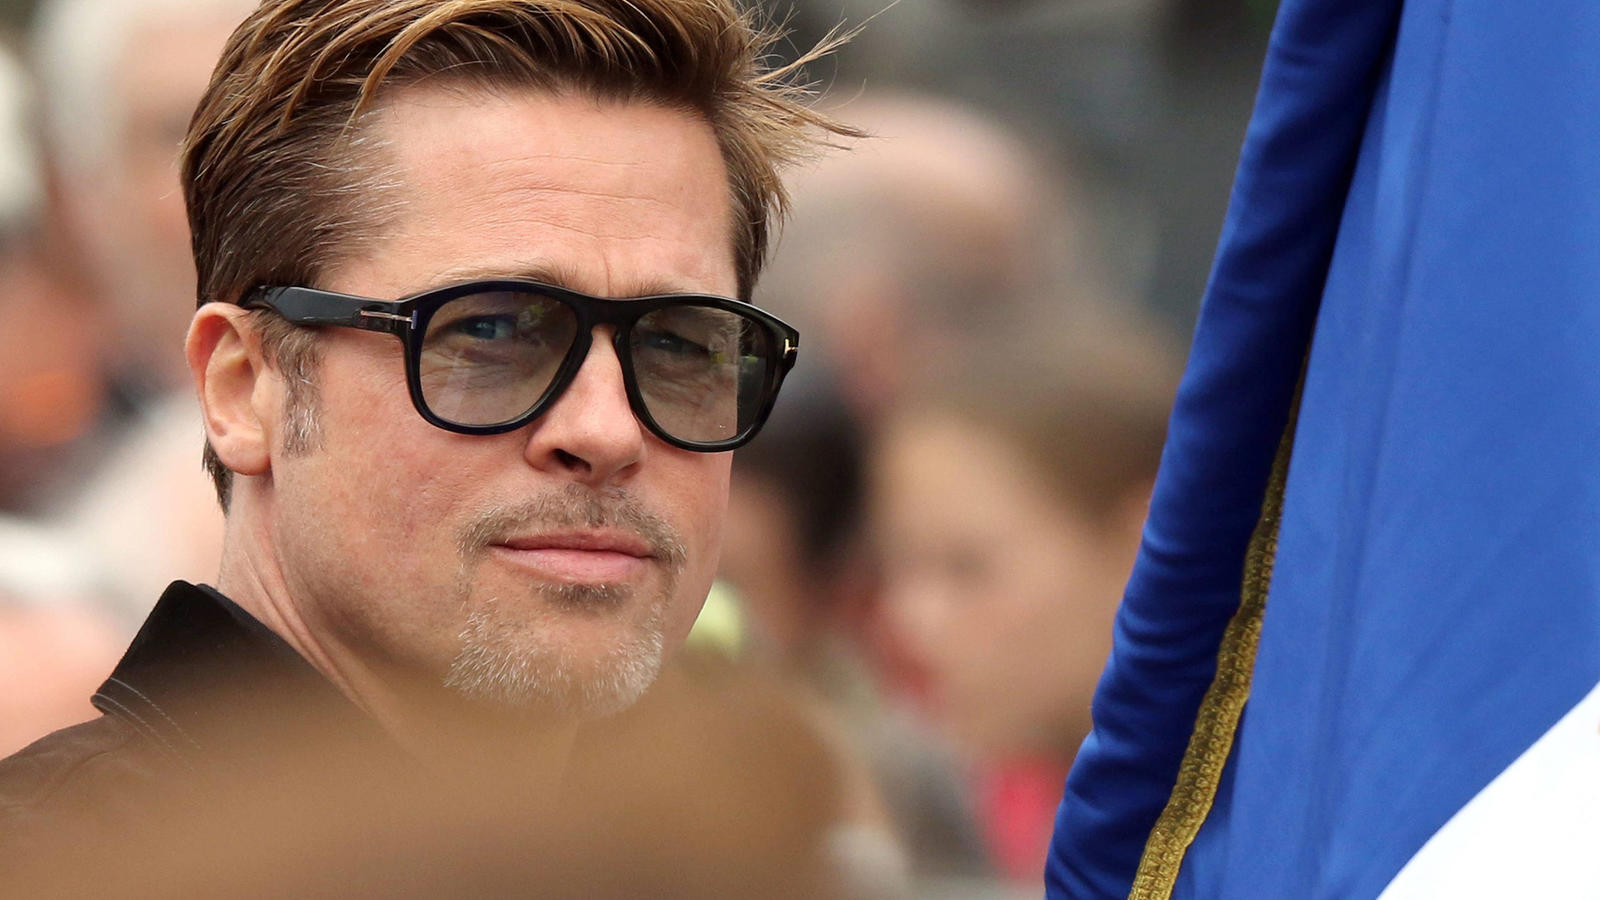 FILE - epa05375084 US actor Brad Pitt before the start of the 24 Hours of Le Mans car race in Le Mans, France, 18 June 2016. EPA/EDDY LEMAISTRE (zu dpa-Meldung: «Polizei bestätigt Ermittlungen gegen Brad Pitt» vom 22.09.2016) +++(c) dpa - Bildfunk+++